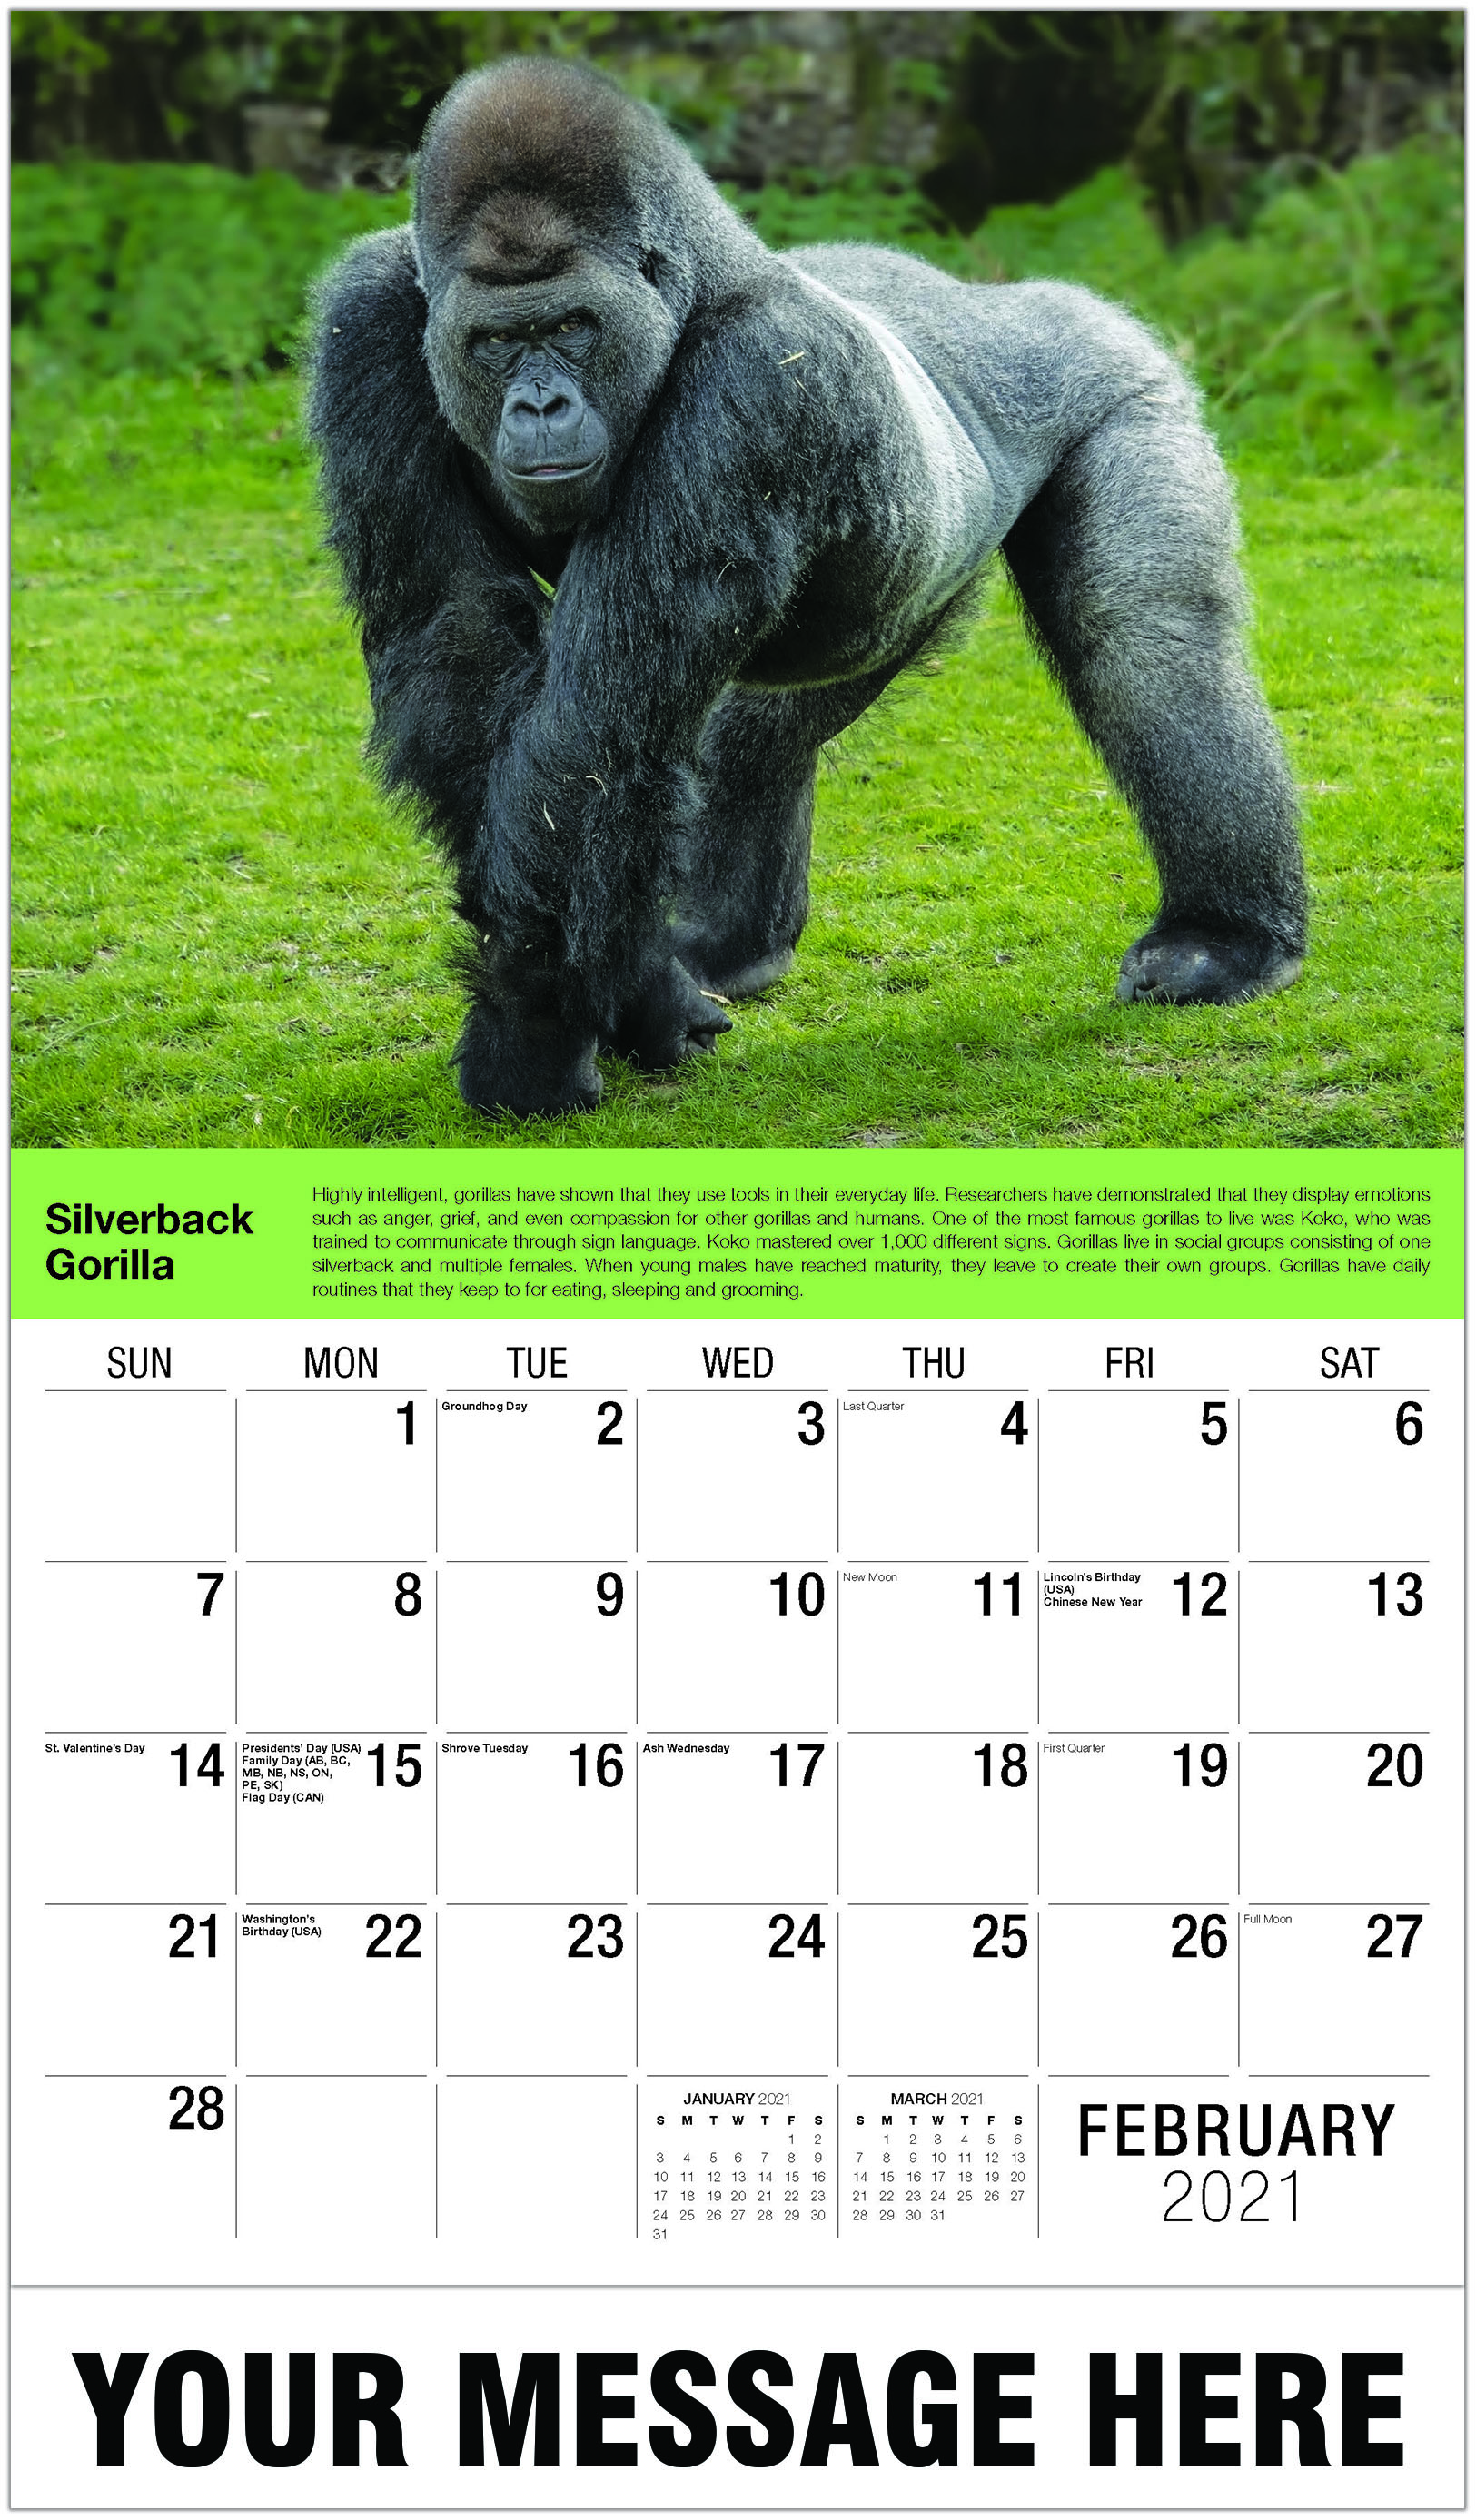 Silverback Gorilla - February - International Wildlife 2021 Promotional Calendar